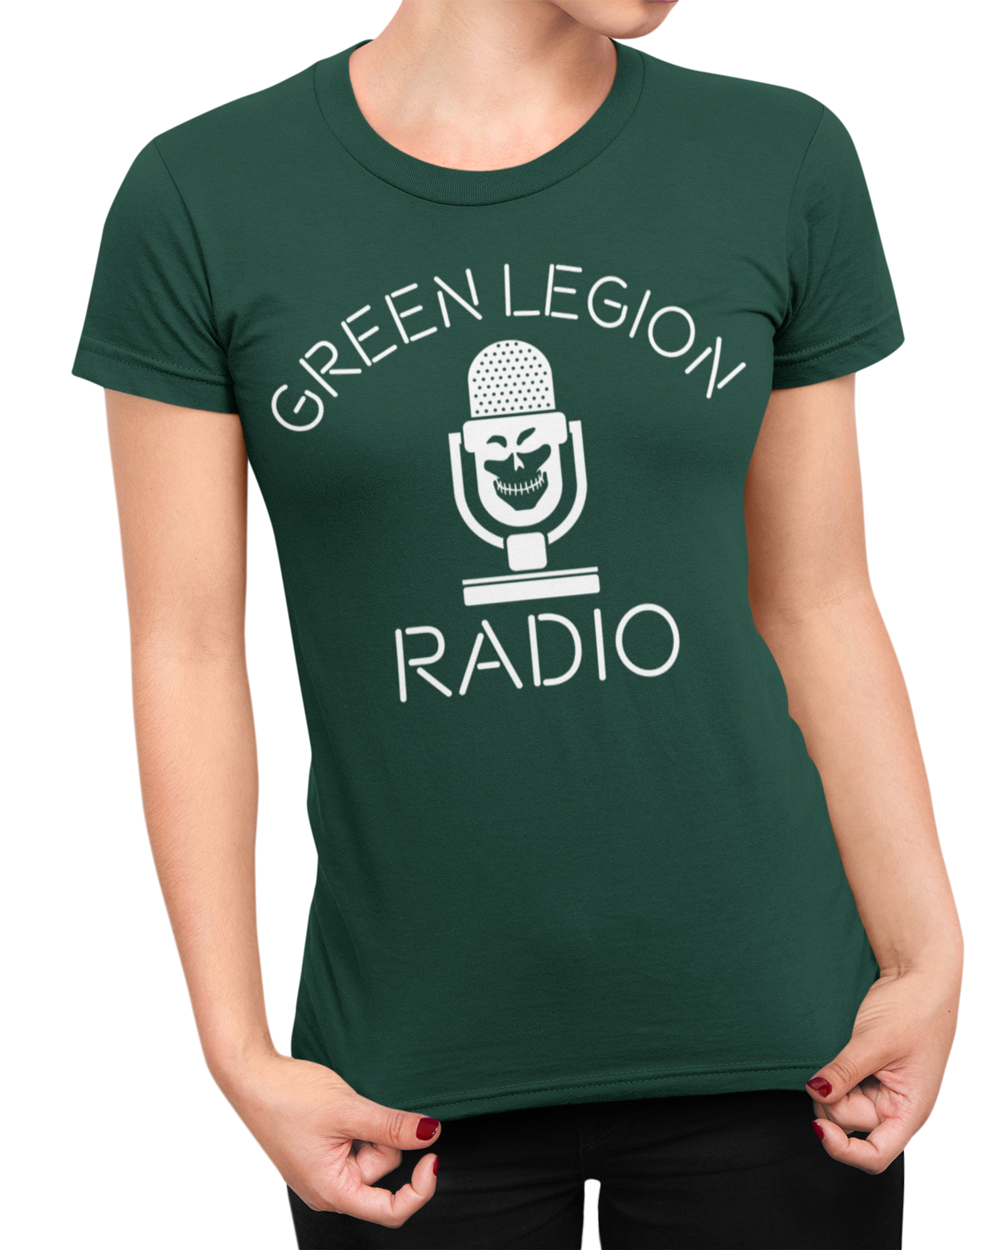 Green Legion Radio T-Shirt